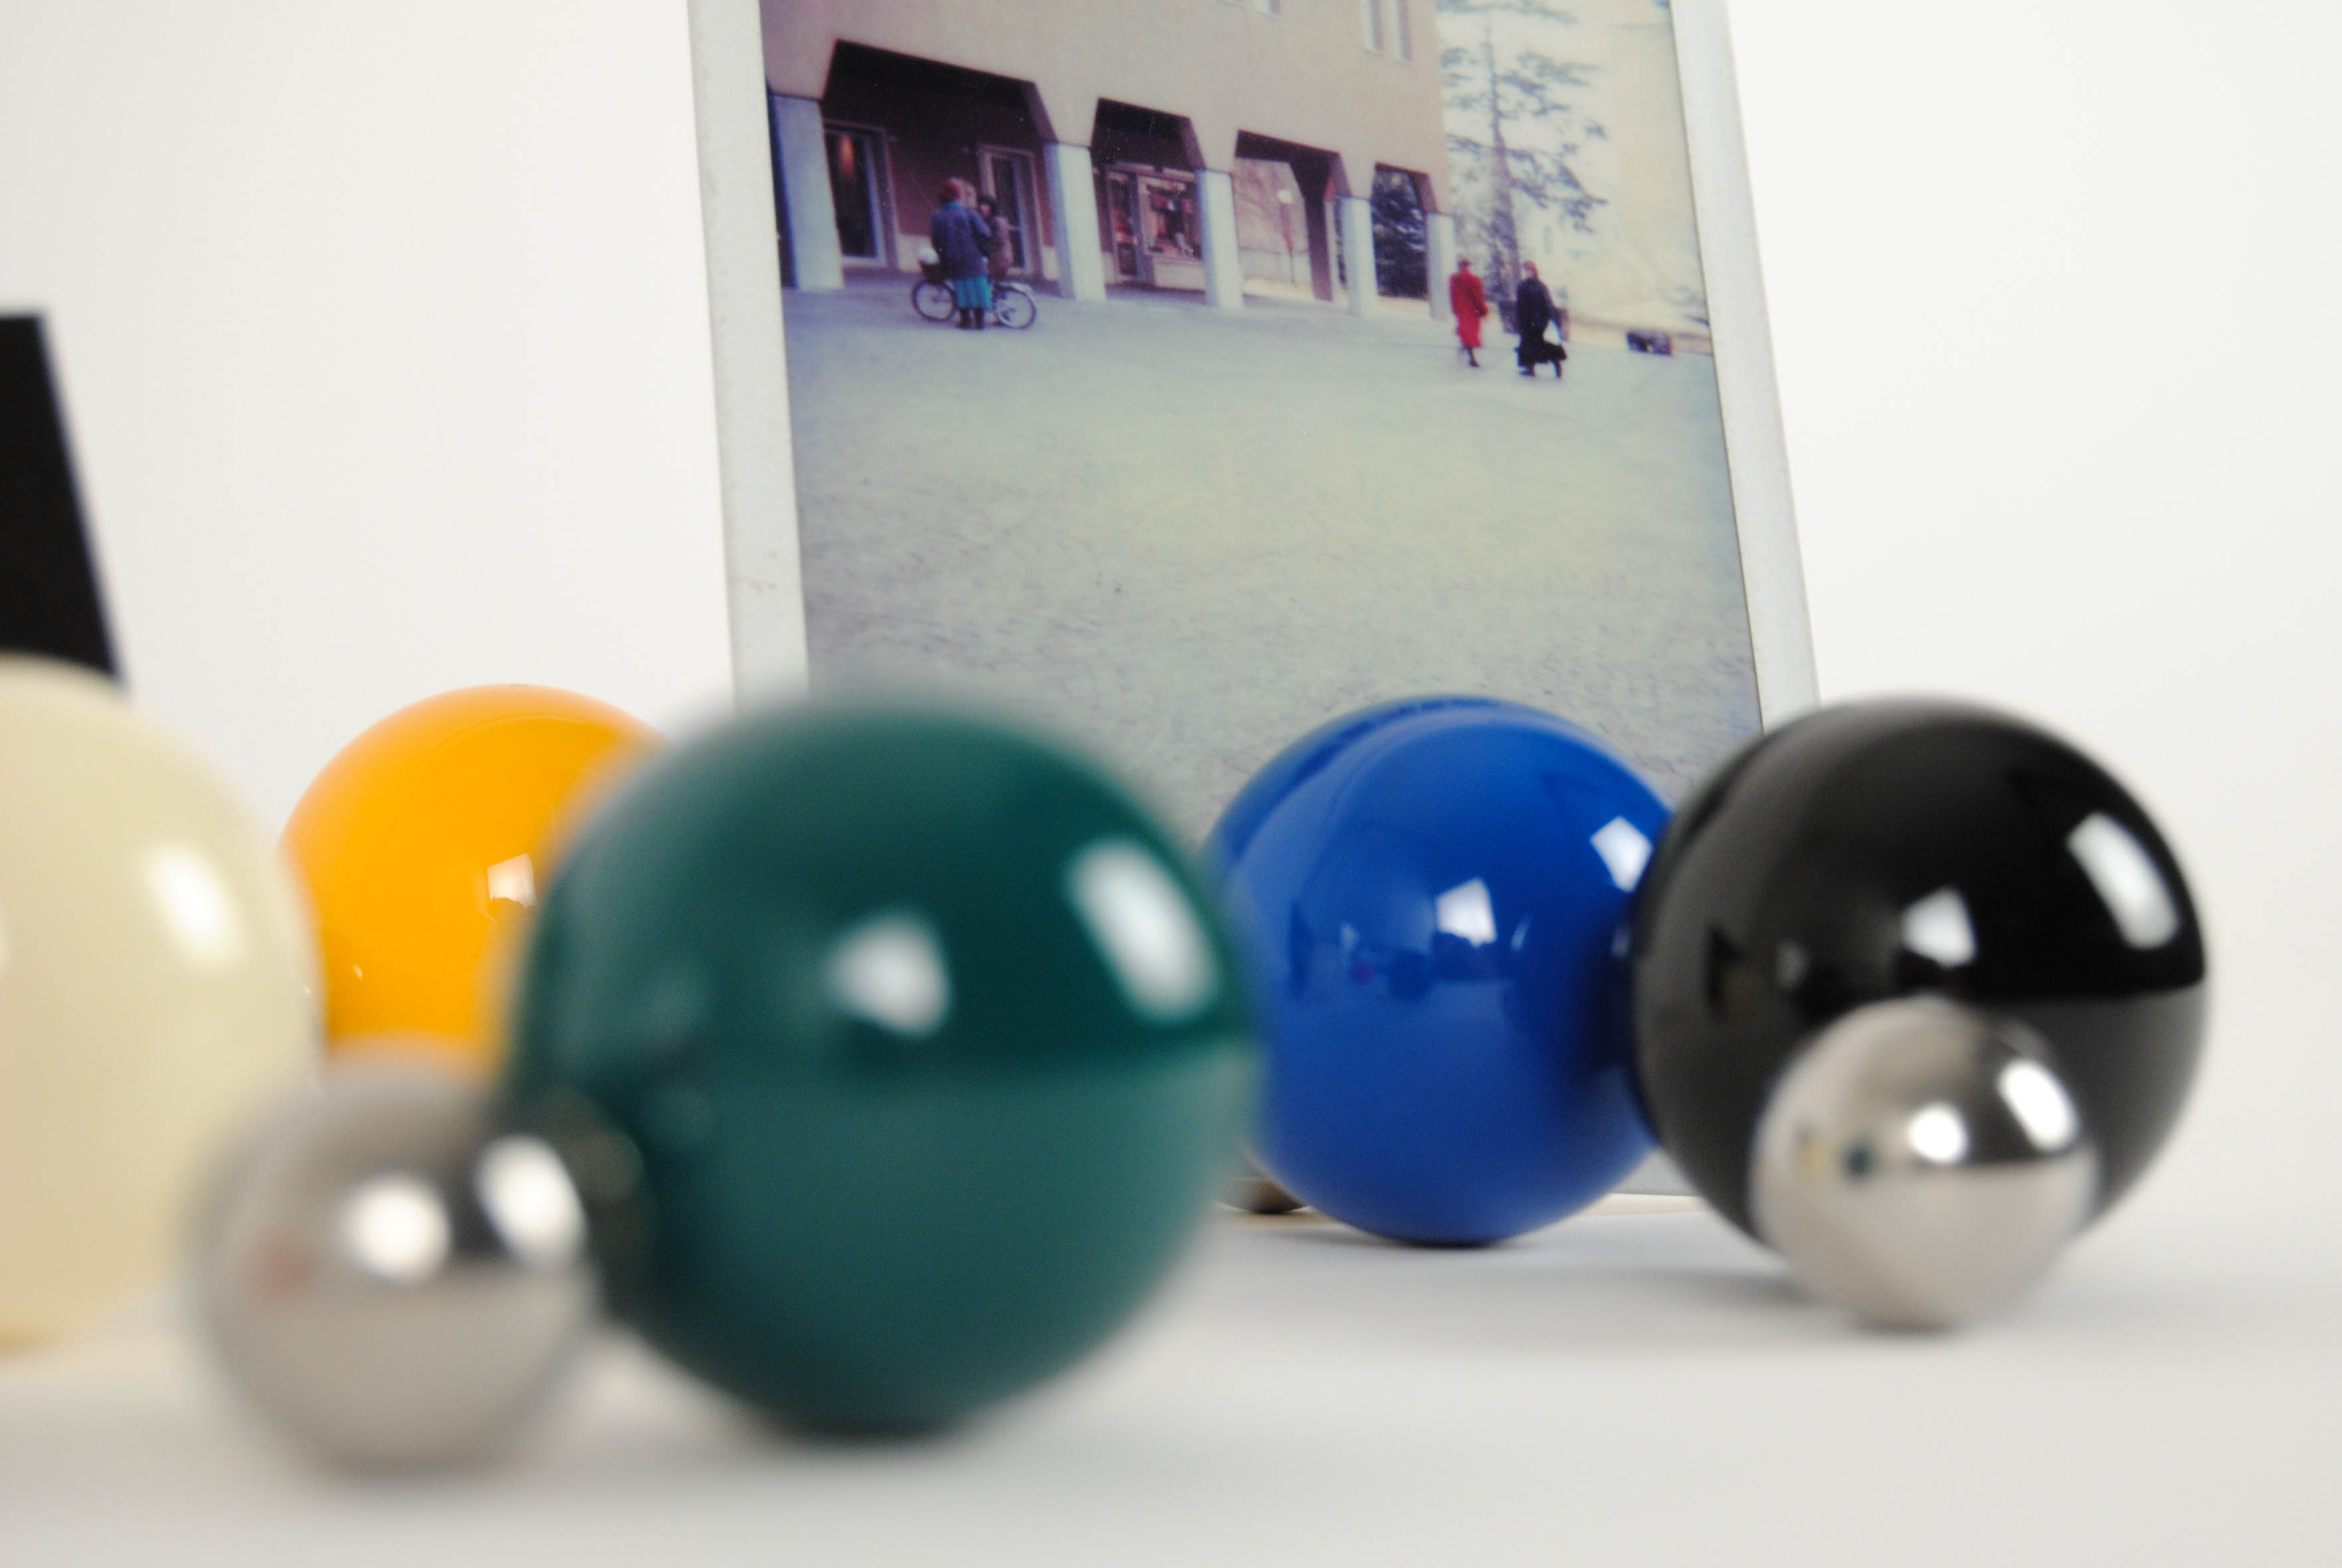 tac photo holders with magnetic balls colored in green black blue and yellow